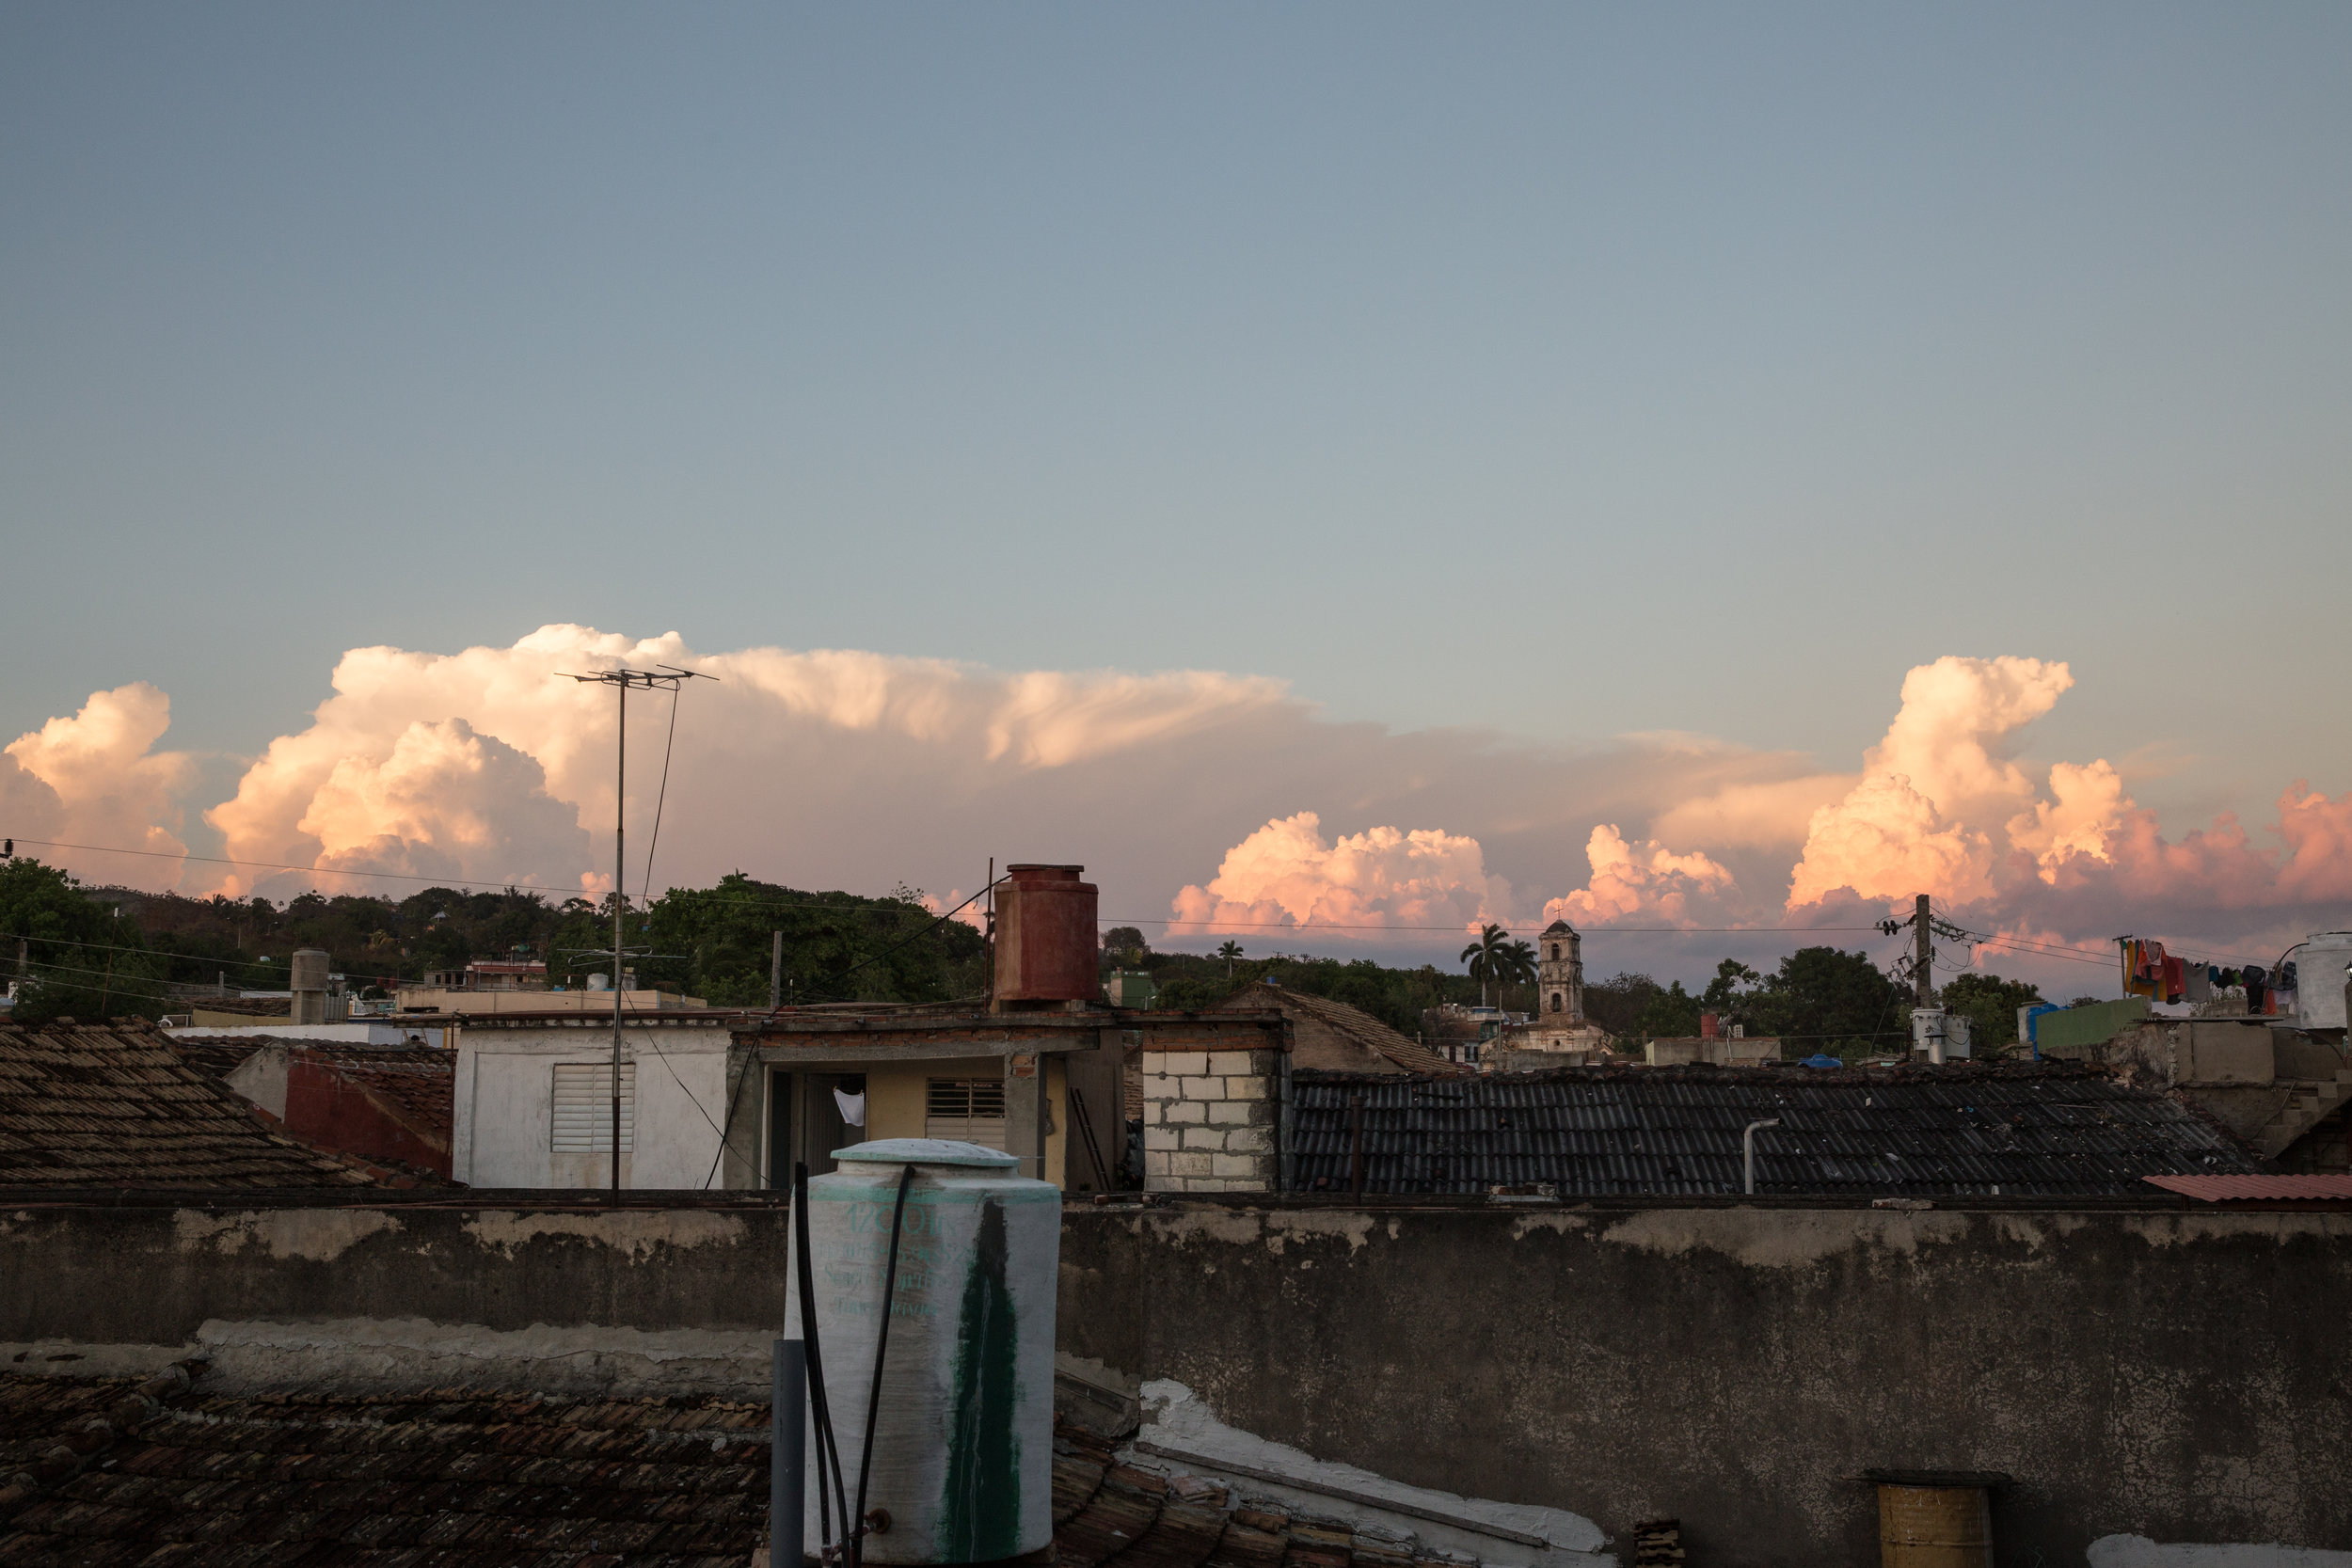 Founded in 1514, sunset in Trinidad de Cuba was humbling every time.